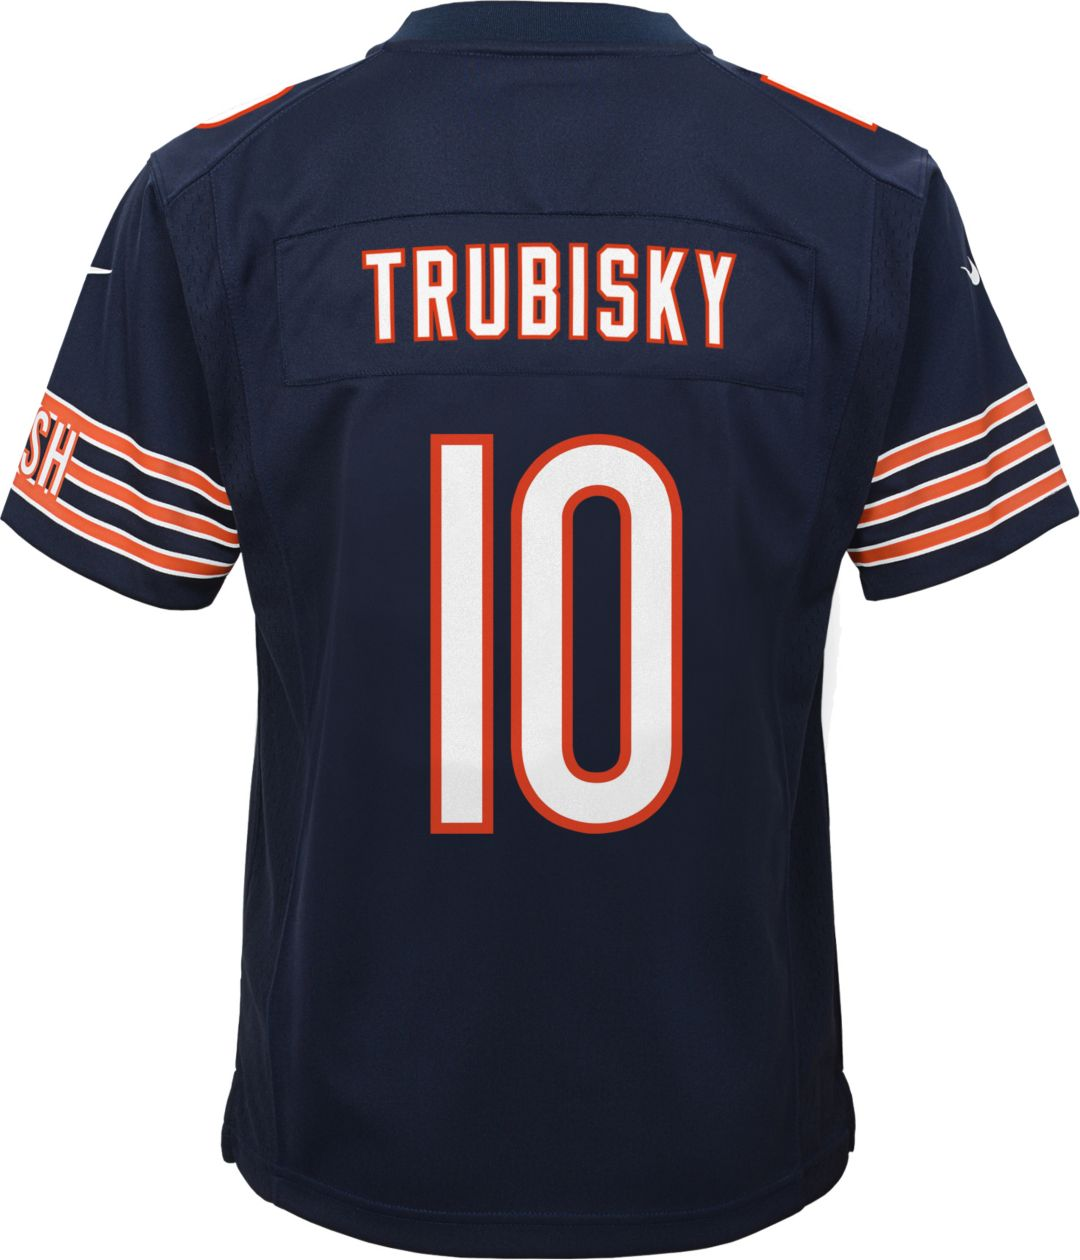 quality design 4a8a0 2ffa9 Nike Youth Home Game Jersey Chicago Bears Mitchell Trubisky #10